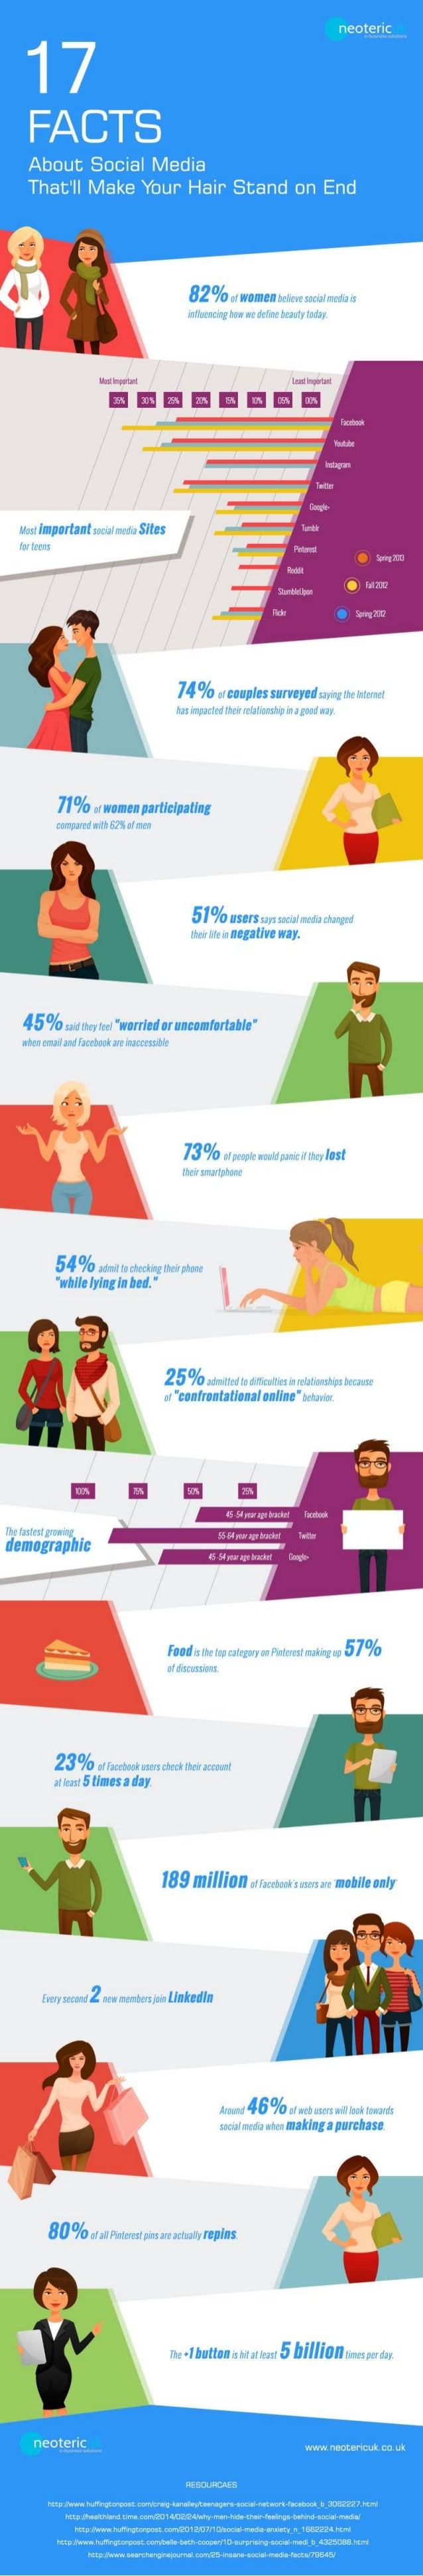 17 facts about social media that'll make your hair stand on end!